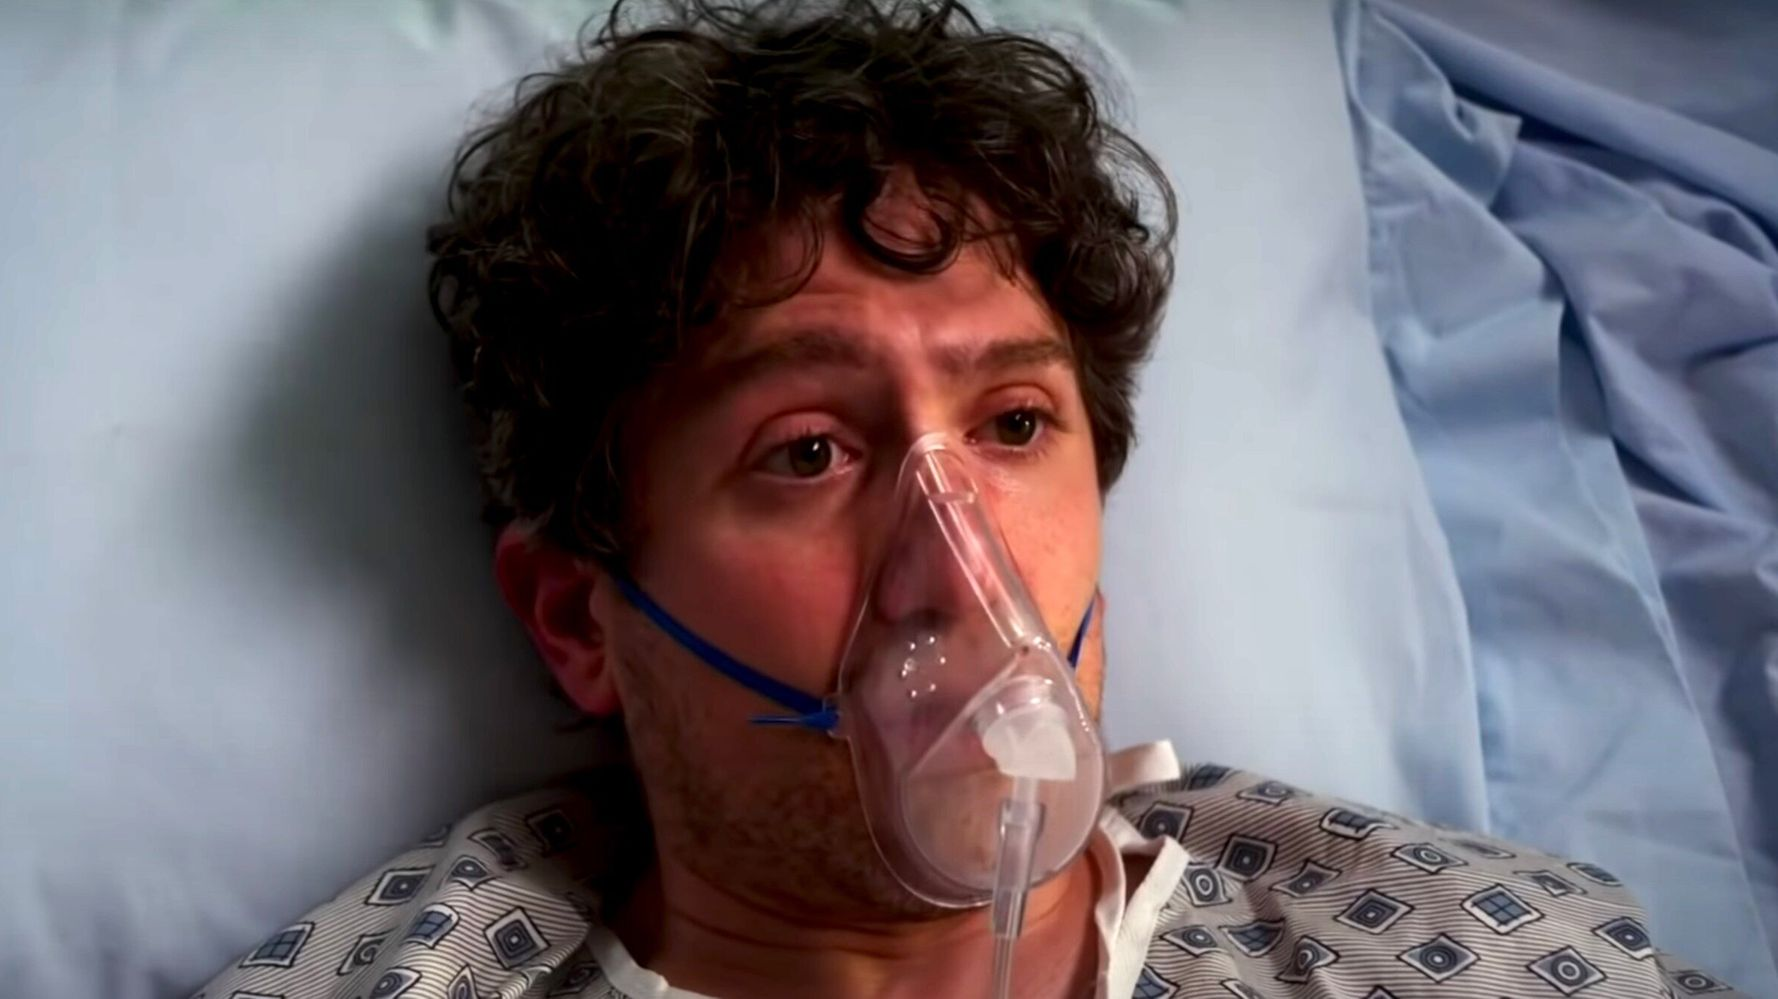 Biting New Anti-Trump Video Imagines A Republican Waking Up From A Coma